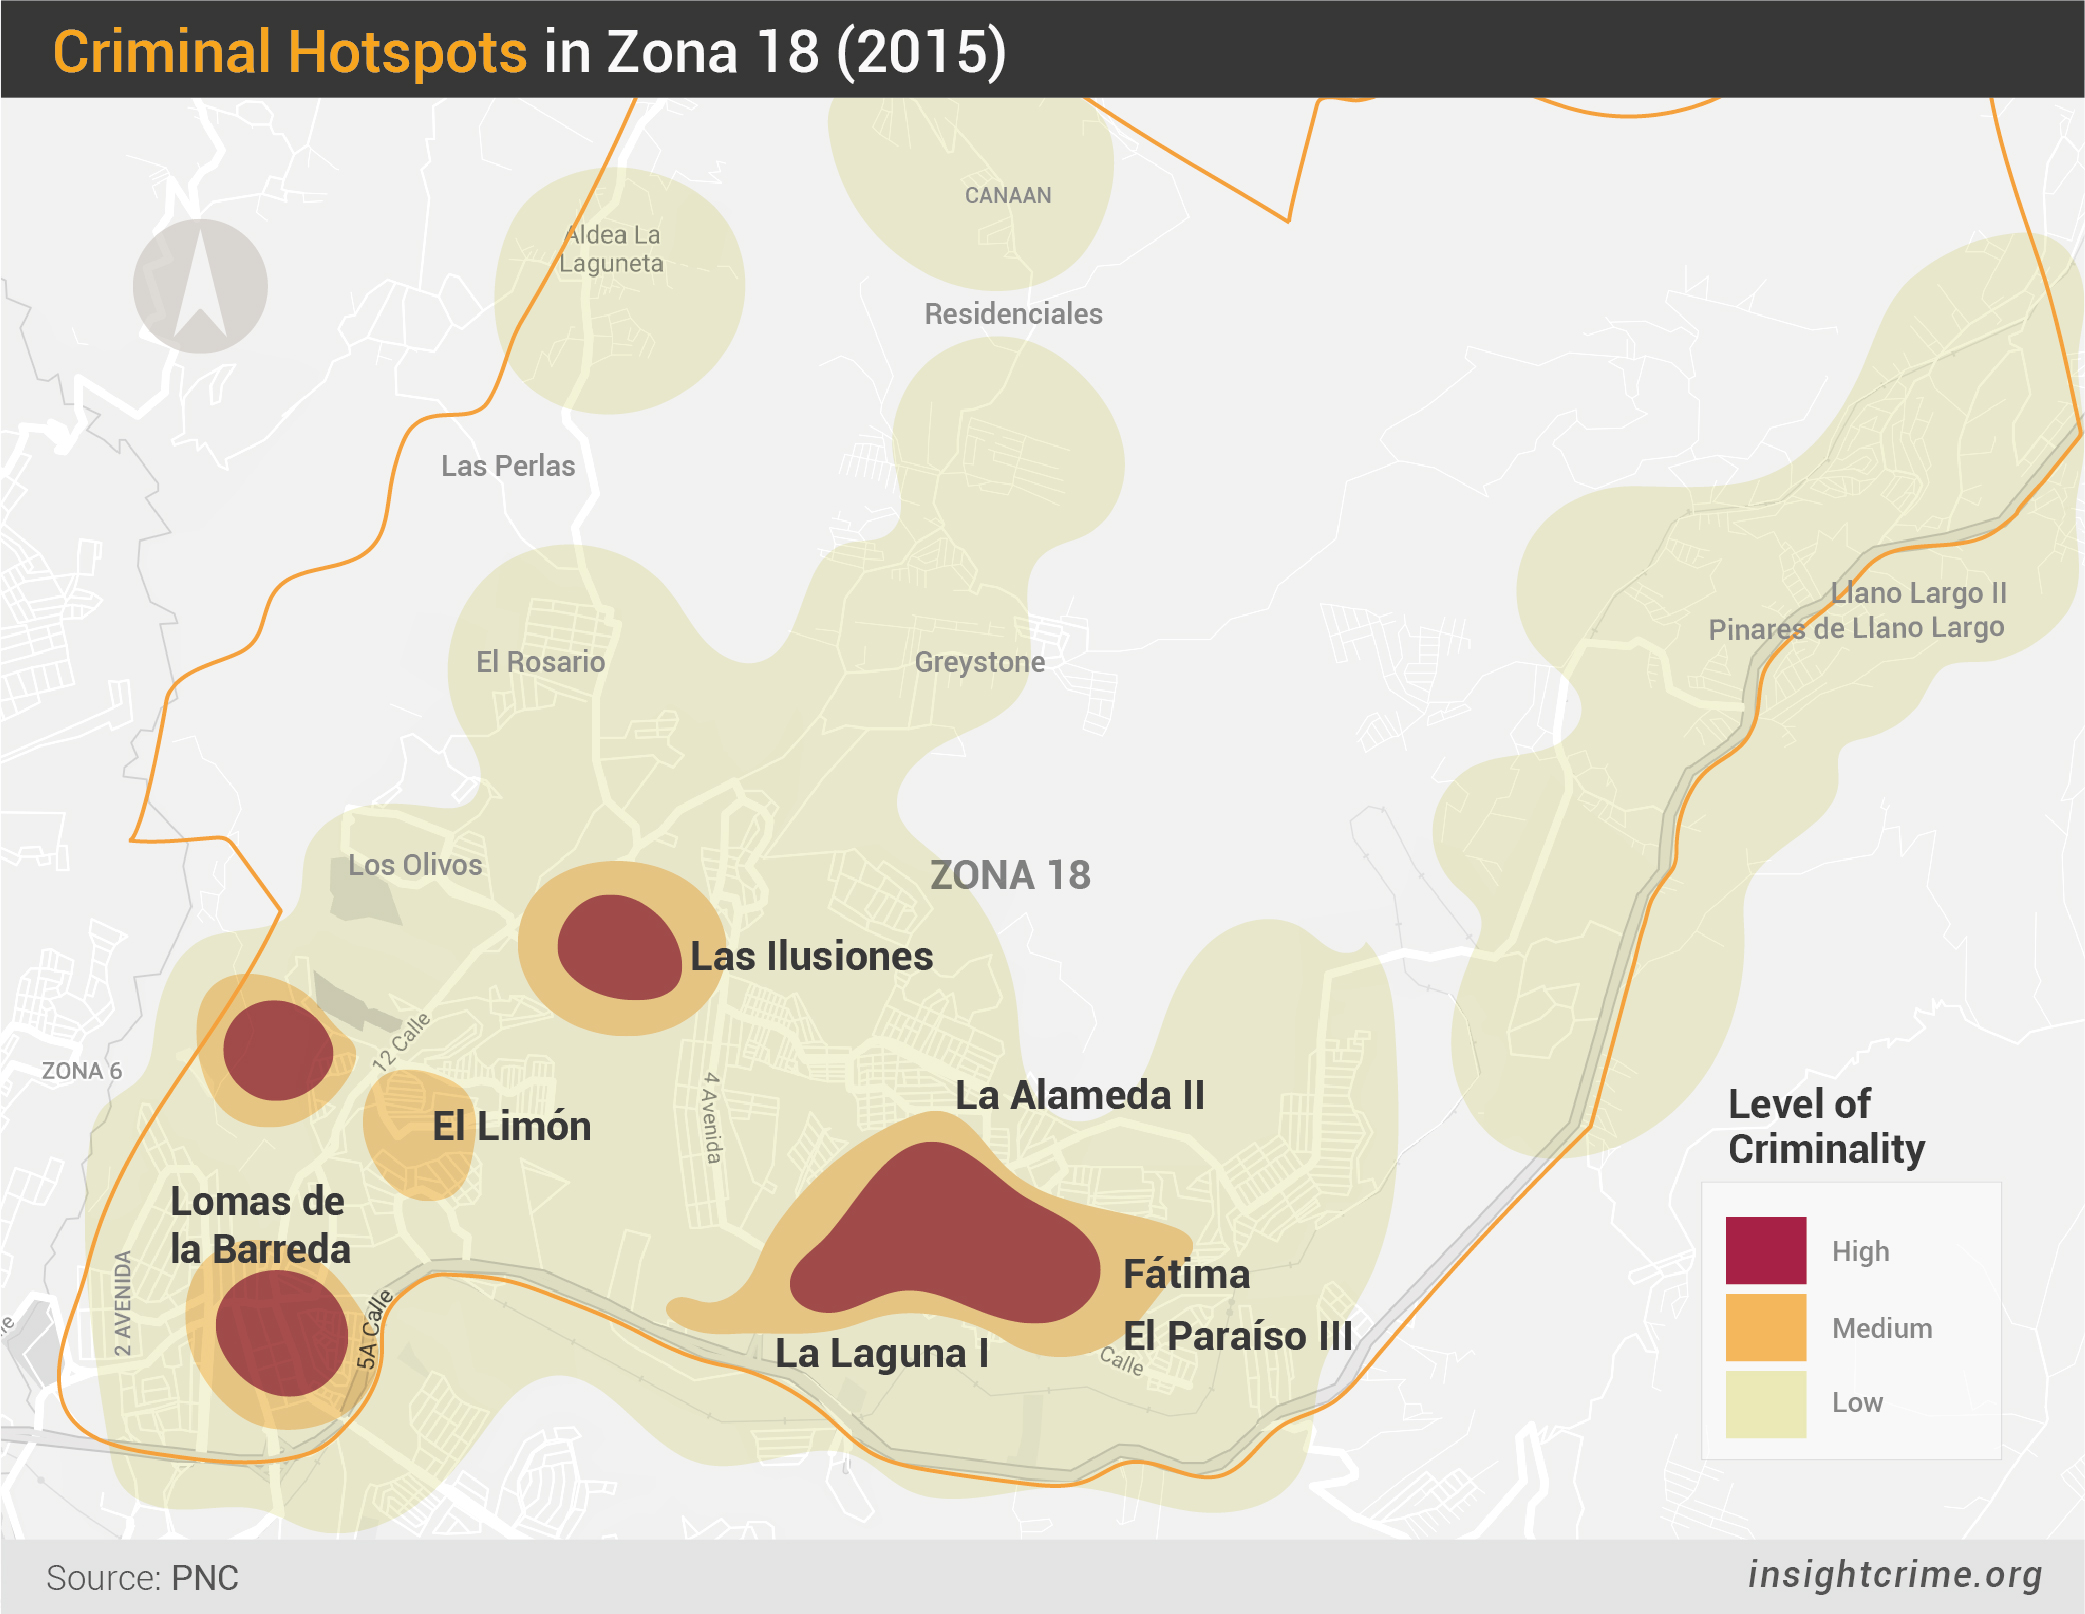 Map-4-Hotspot-Zona-18 - 2015-Criminal-Incident-Zone-Guatemala-01 1